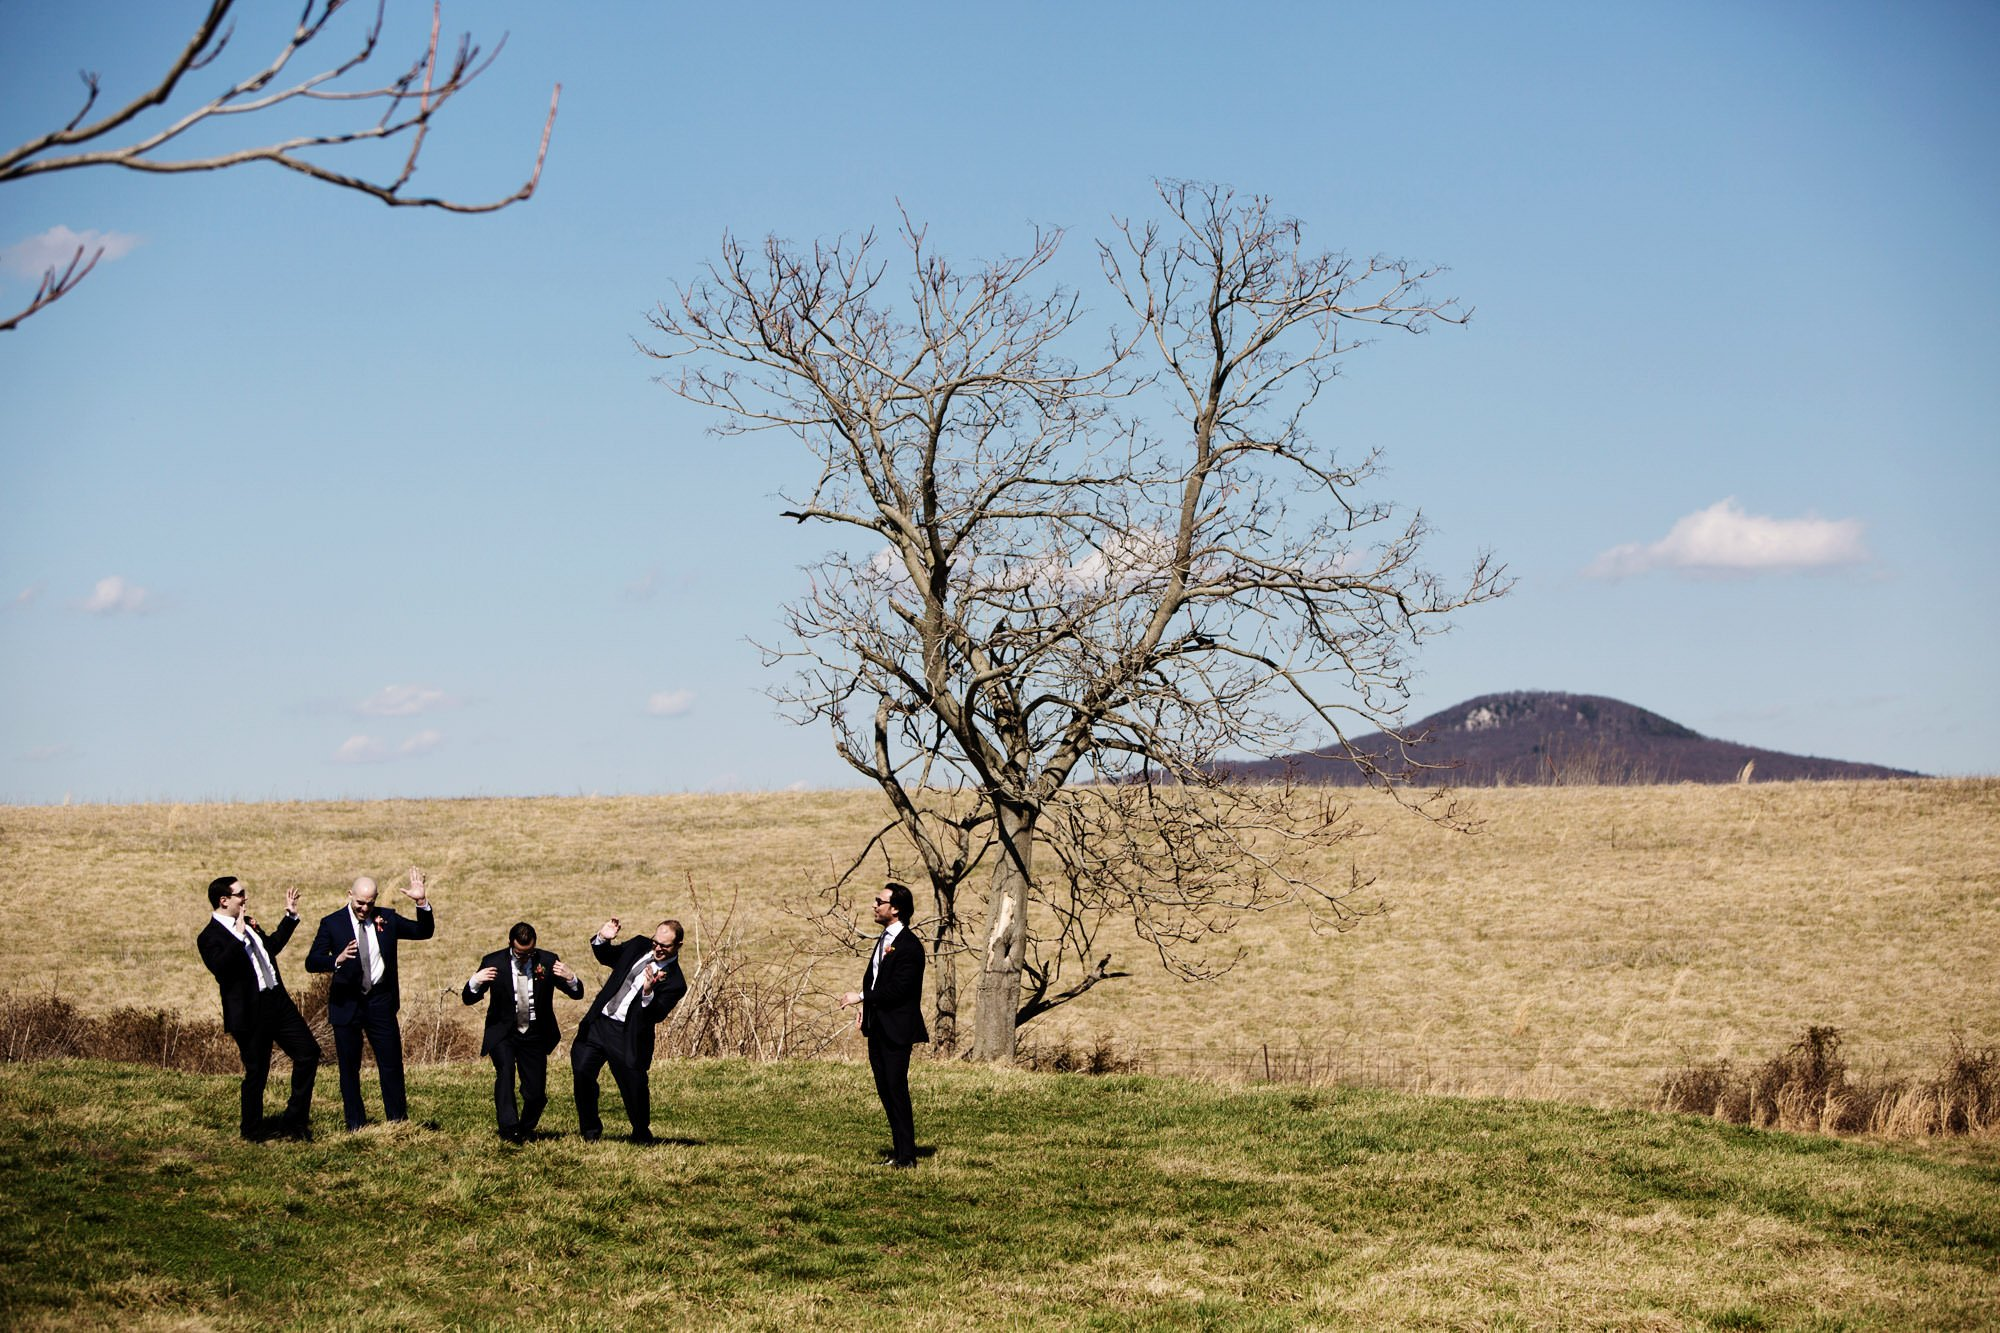 The groomsmen dance in an open field before the wedding ceremony.